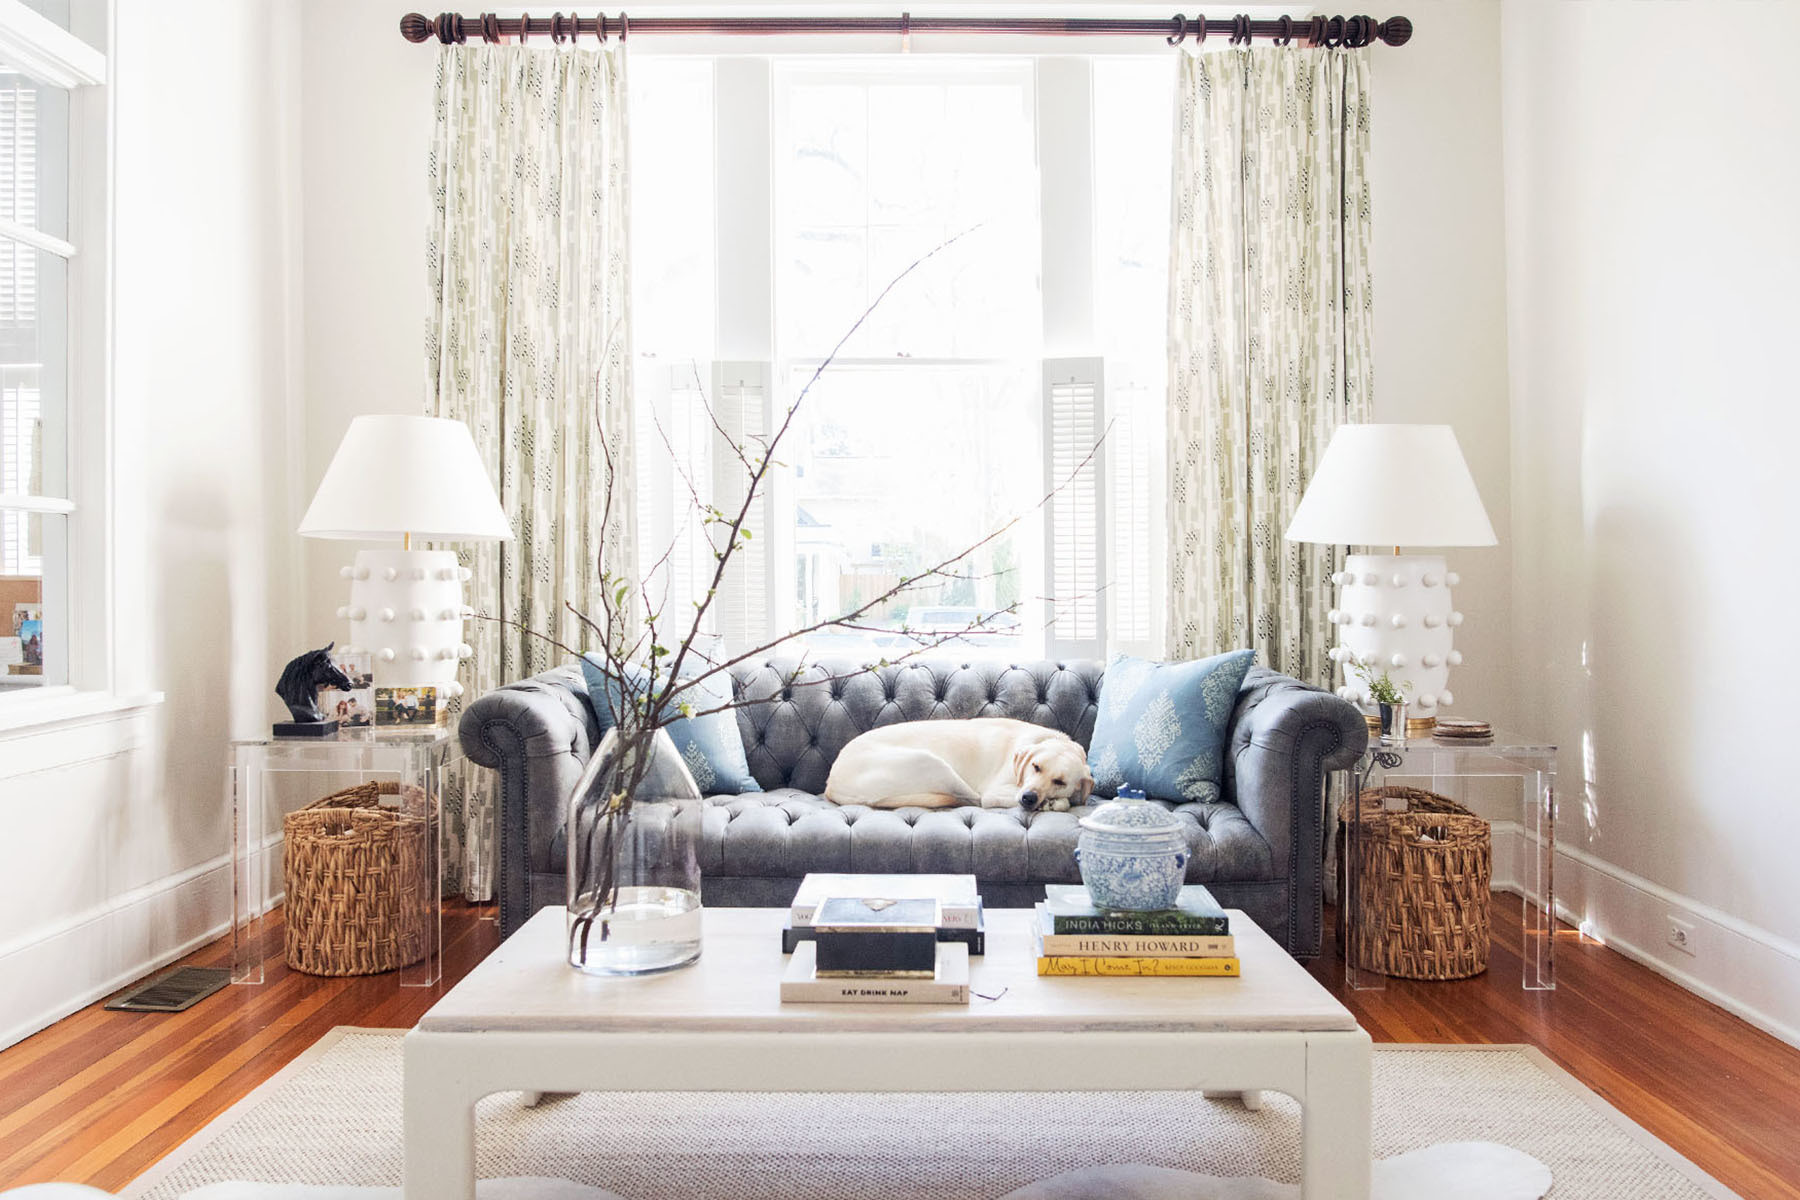 Weezie founder Liz Eichholz's Savannah home oozes southern charm, Lola the lab curls up on the sofa. Antique Chesterfield Sofa | Schumacher Pillows | Scott Antique Market Coffee Table | Clutter; Fieldshop at The Dewberry Accent Pieces | Target Vase | Safavieh Rug | Scott Antique Market Hide | Ballard Design Acrylic Side Tables | Kelly Wearstler Lamps | The Paris Market Horse Head Candle | HomeGoods Cane Baskets | Thomas Callaway Custom Drapes.